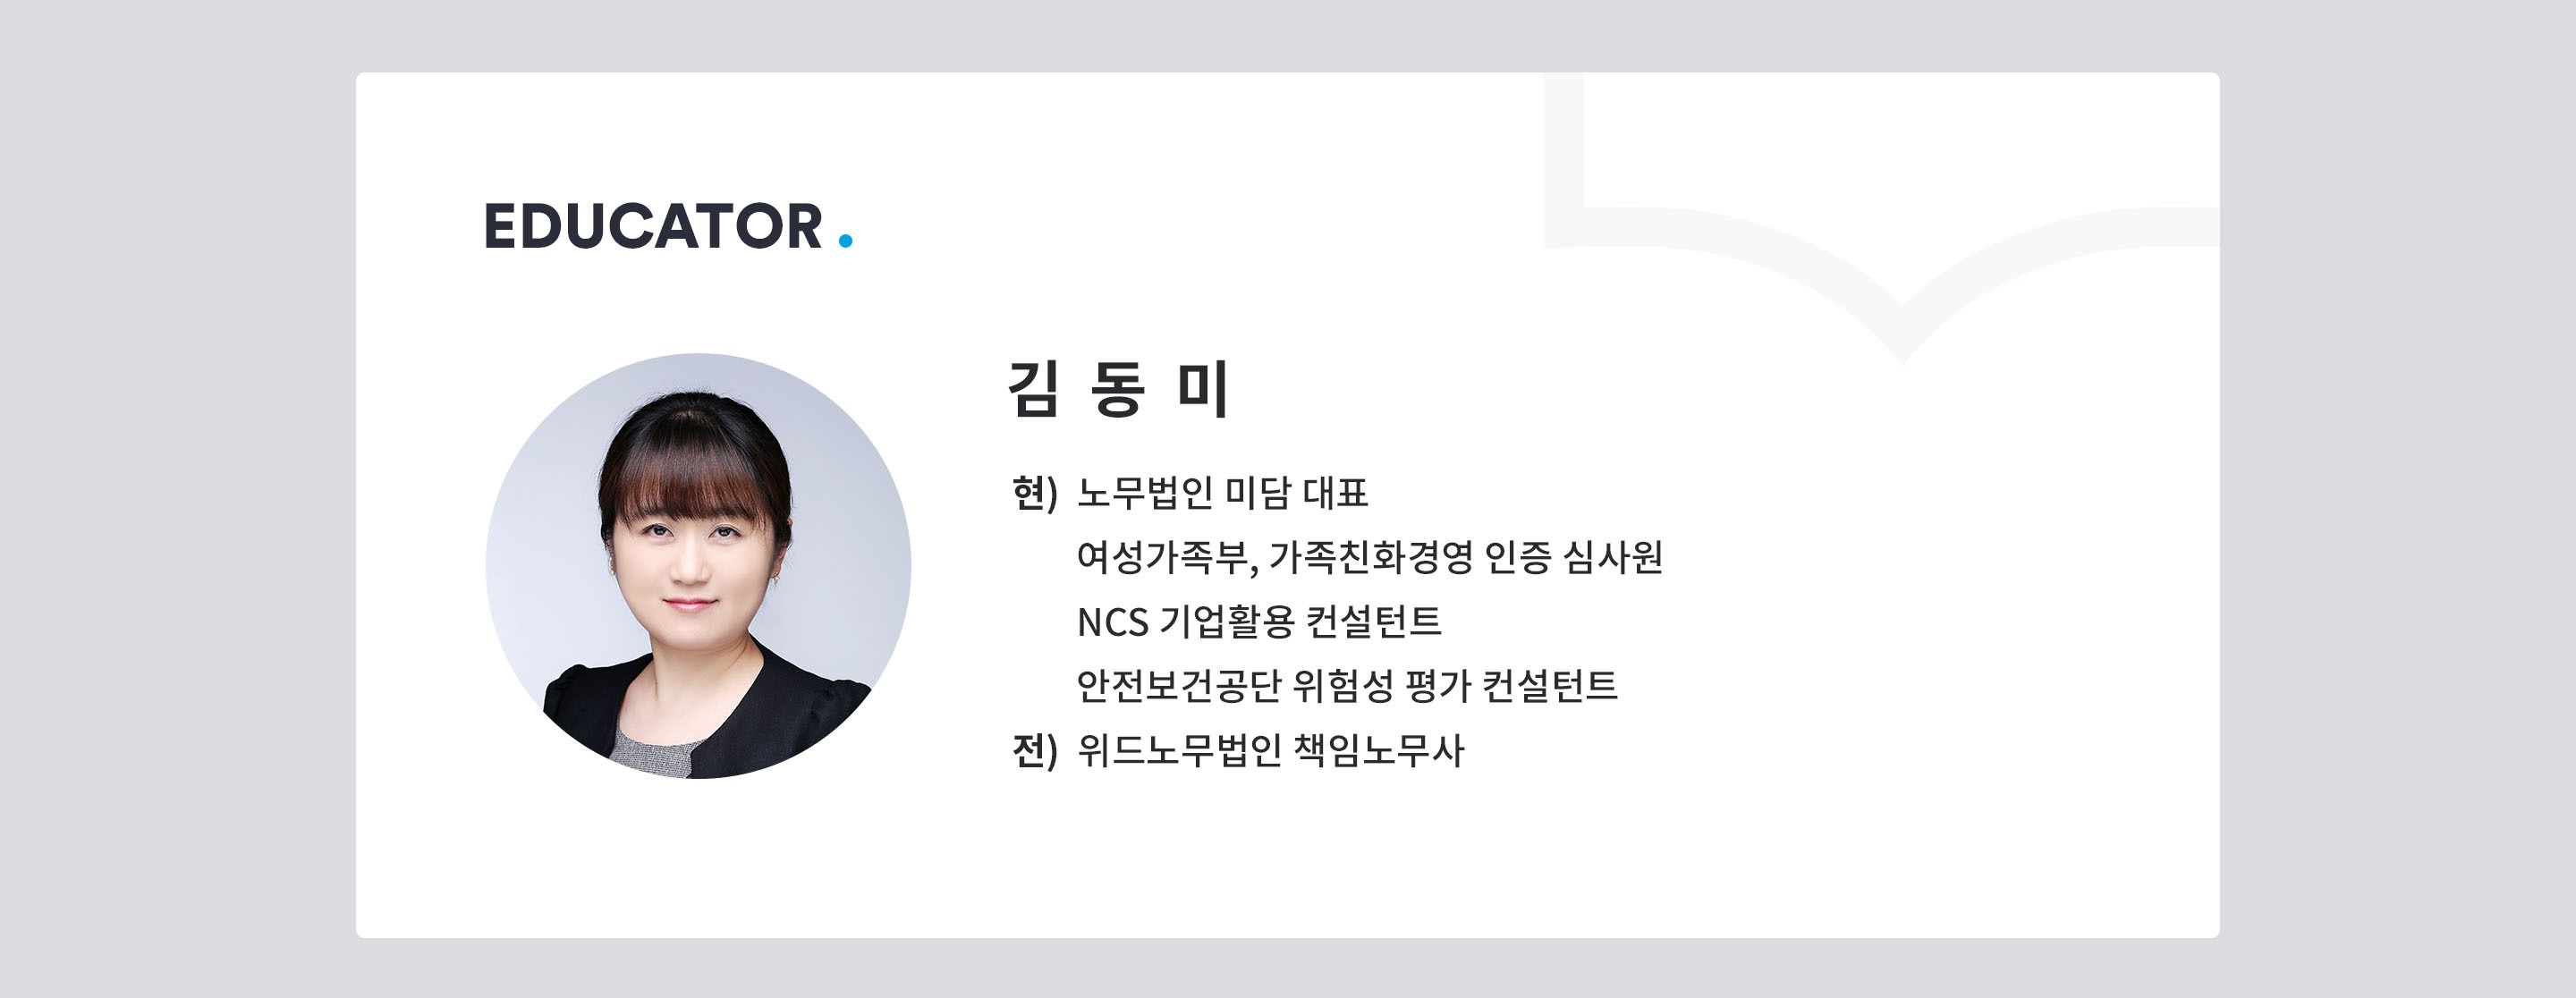 https://static.wanted.co.kr/images/events/1214/f0cc7114.jpg